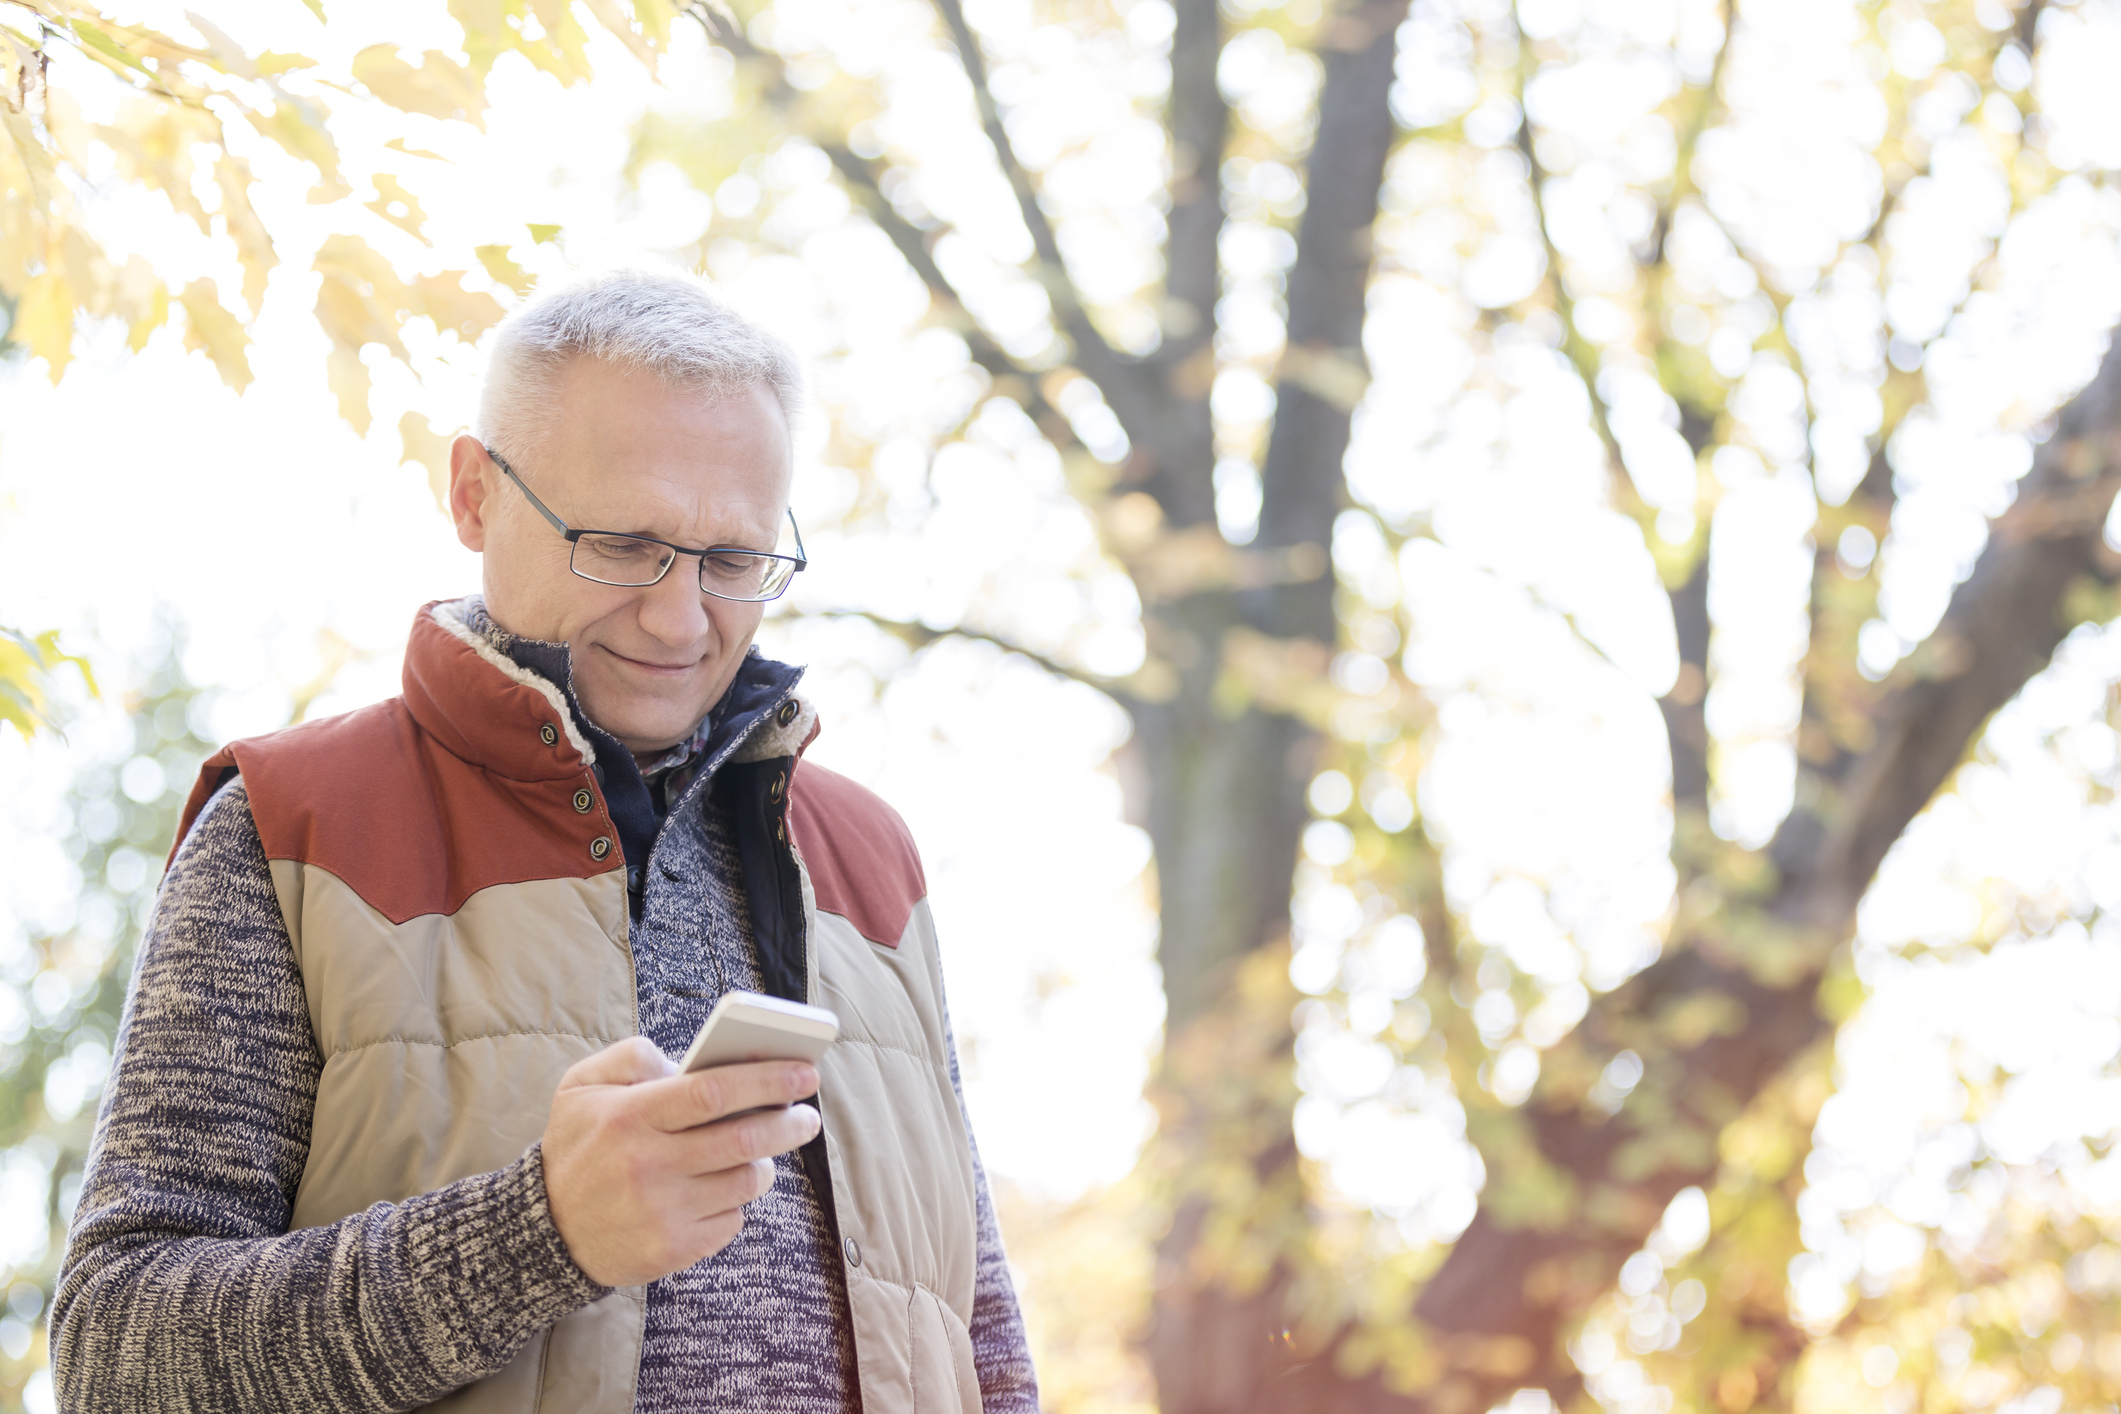 Man in jacket using phone outdoors